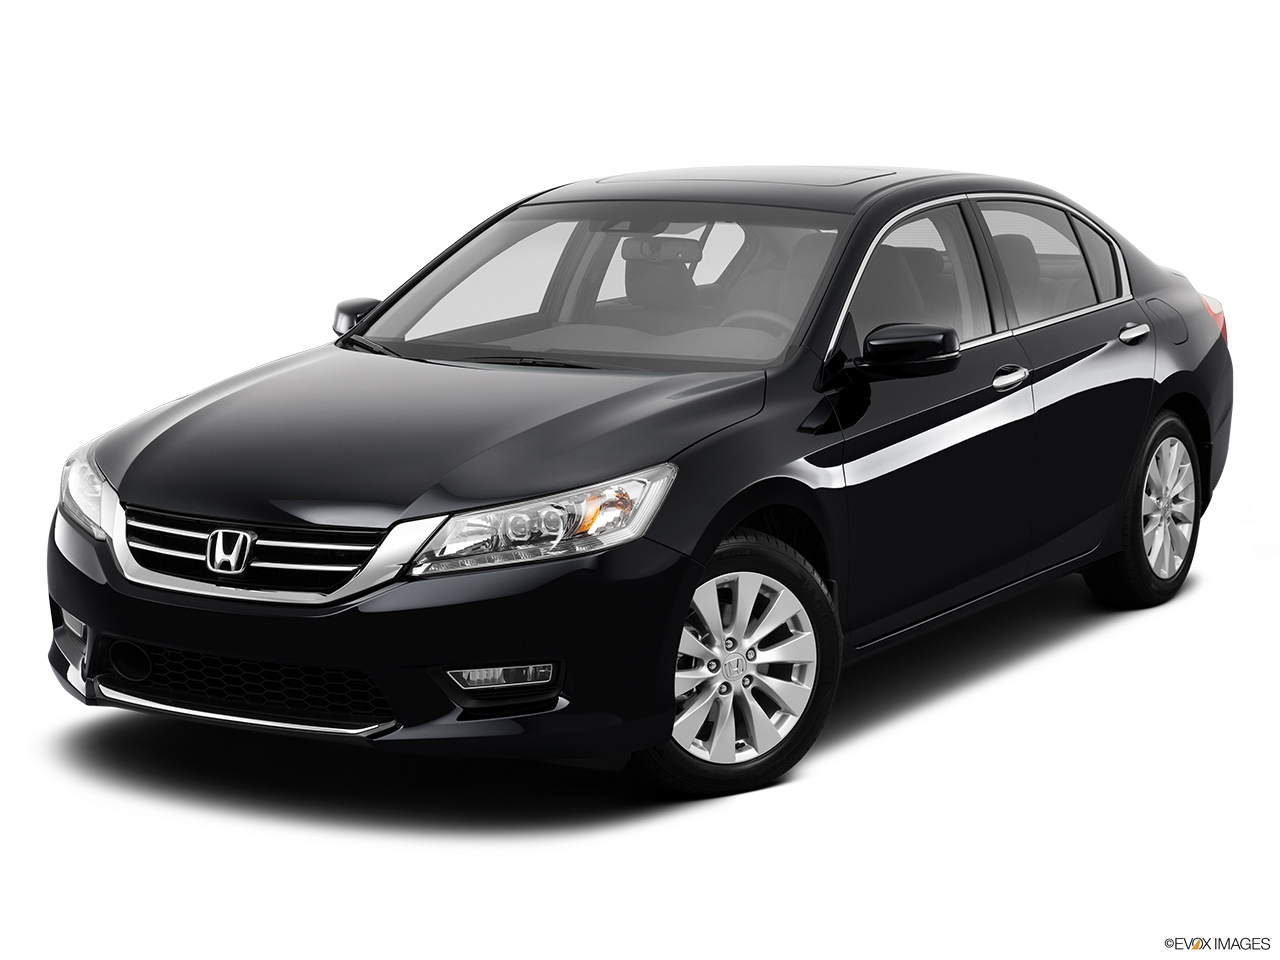 2014 honda accord sedan v6 automatic touring. Black Bedroom Furniture Sets. Home Design Ideas